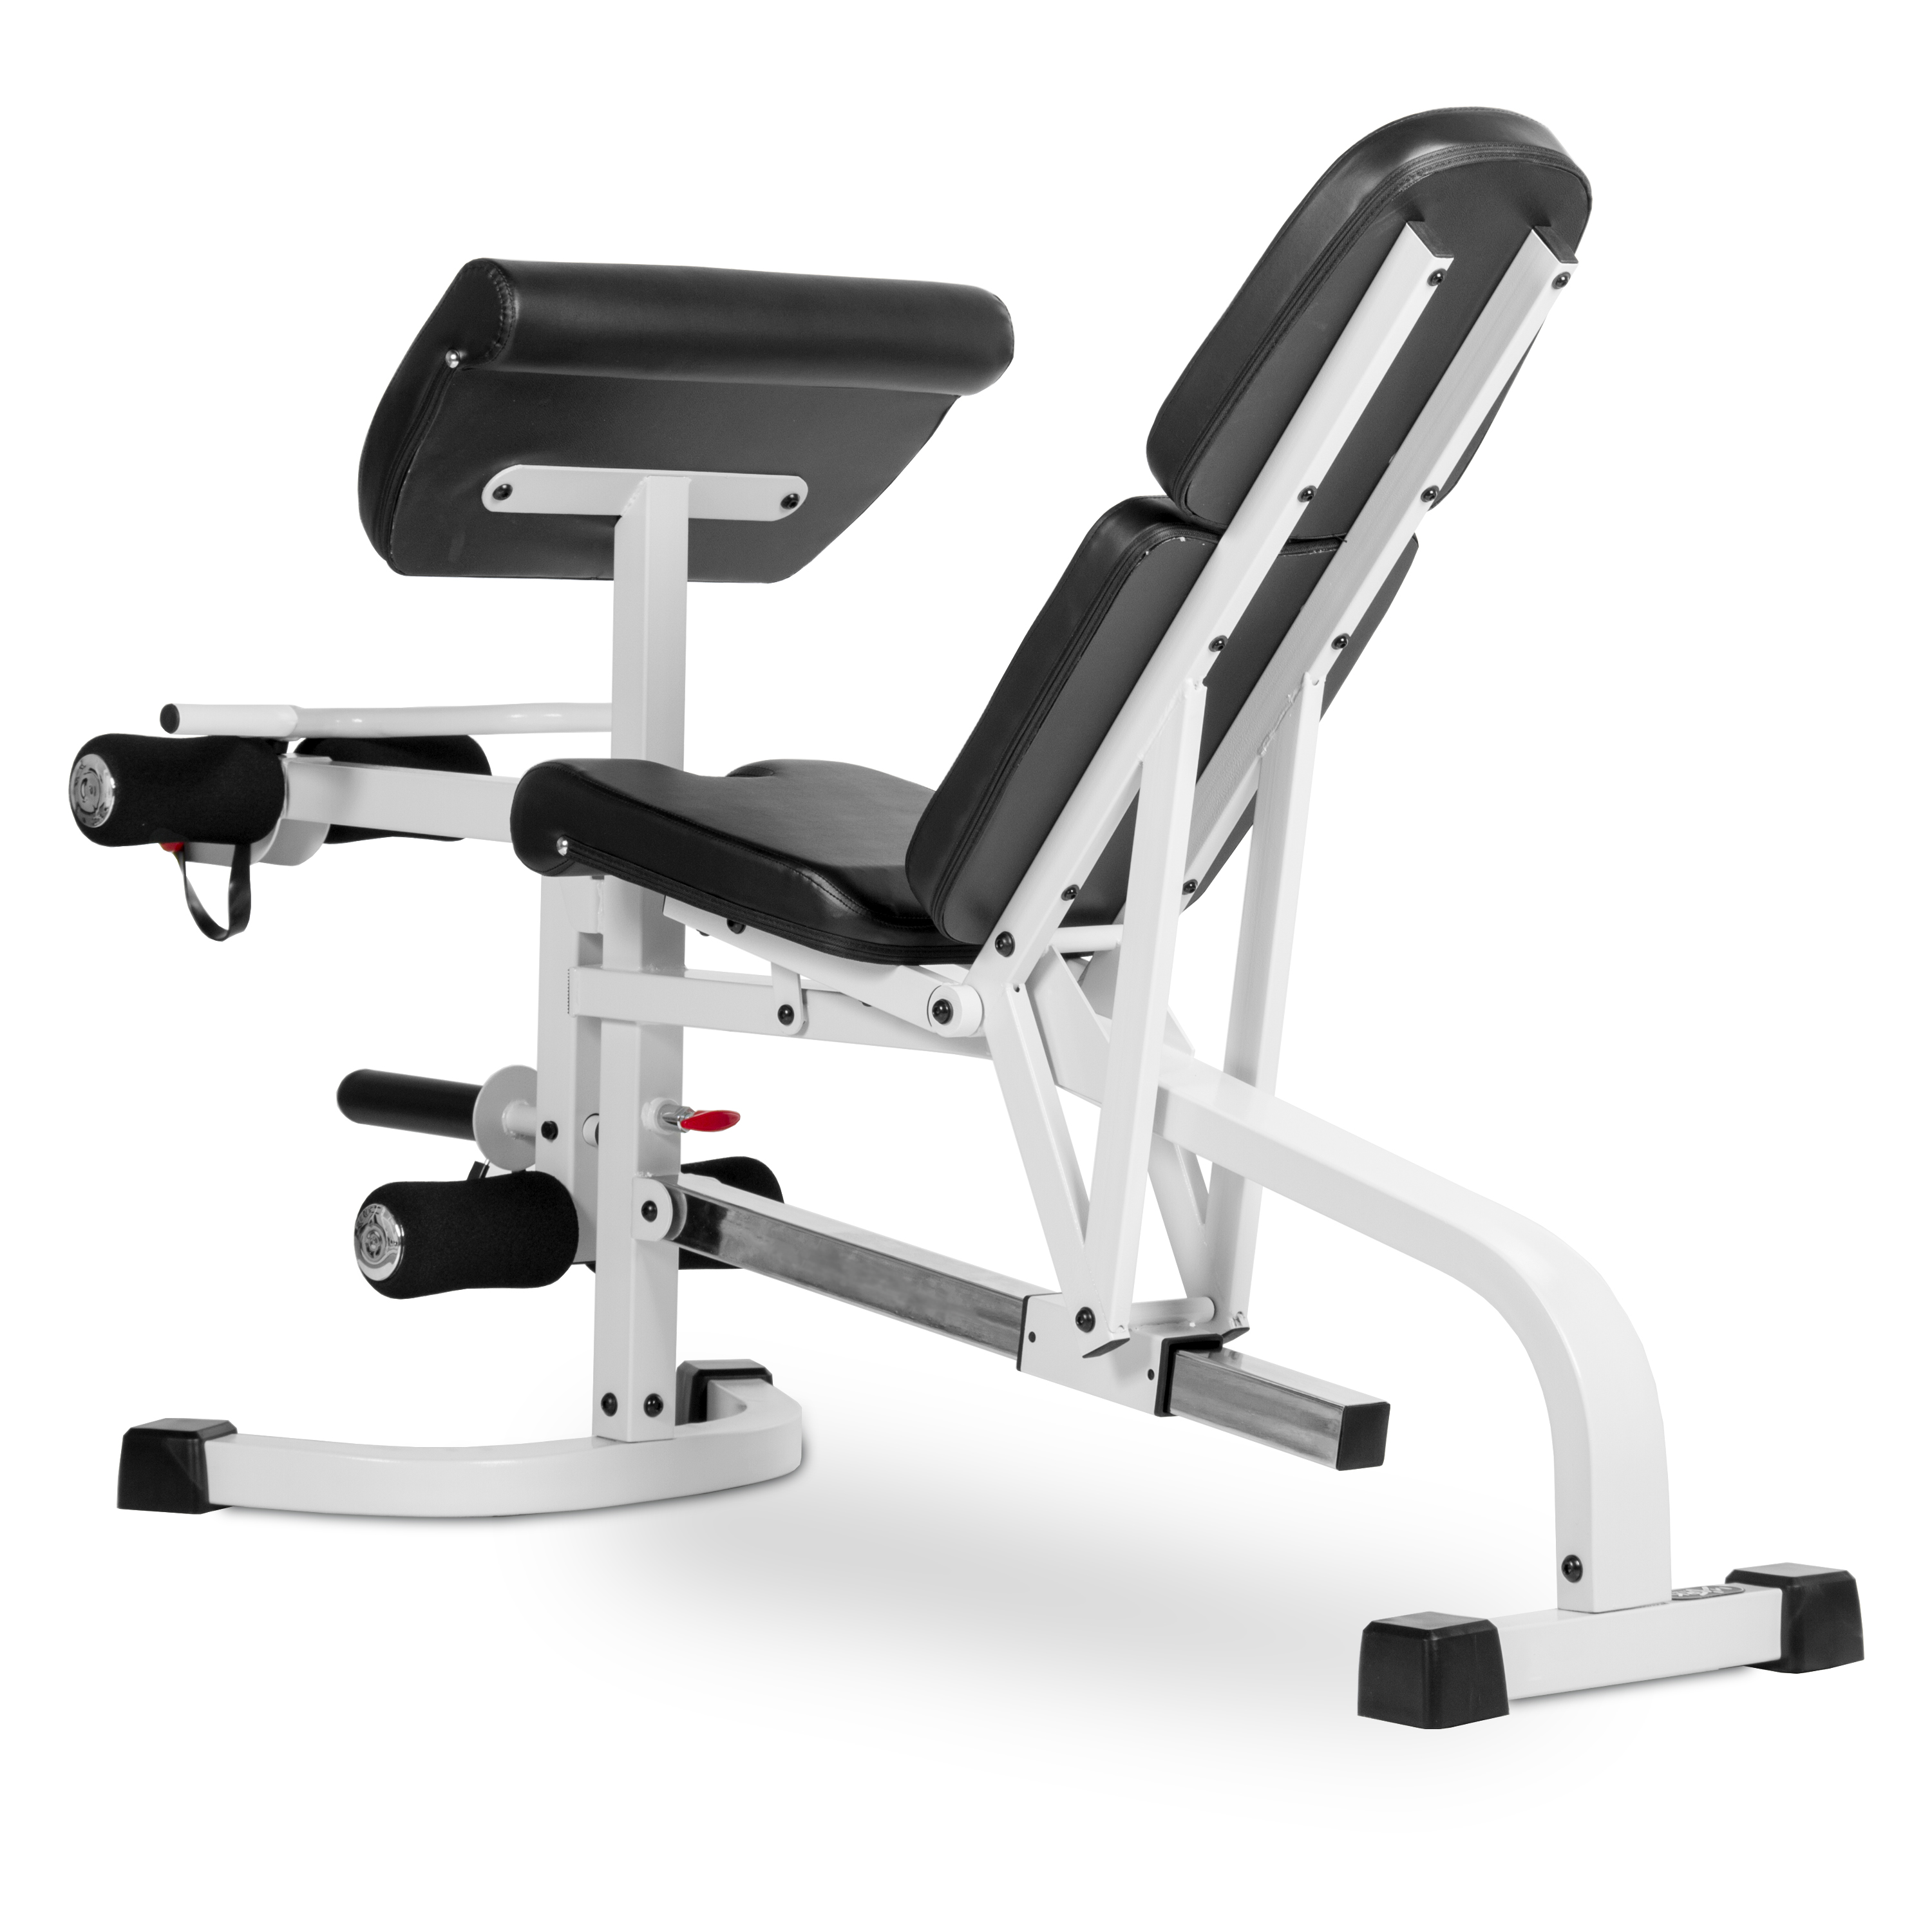 flat savage fts strength incline weight to york bench products